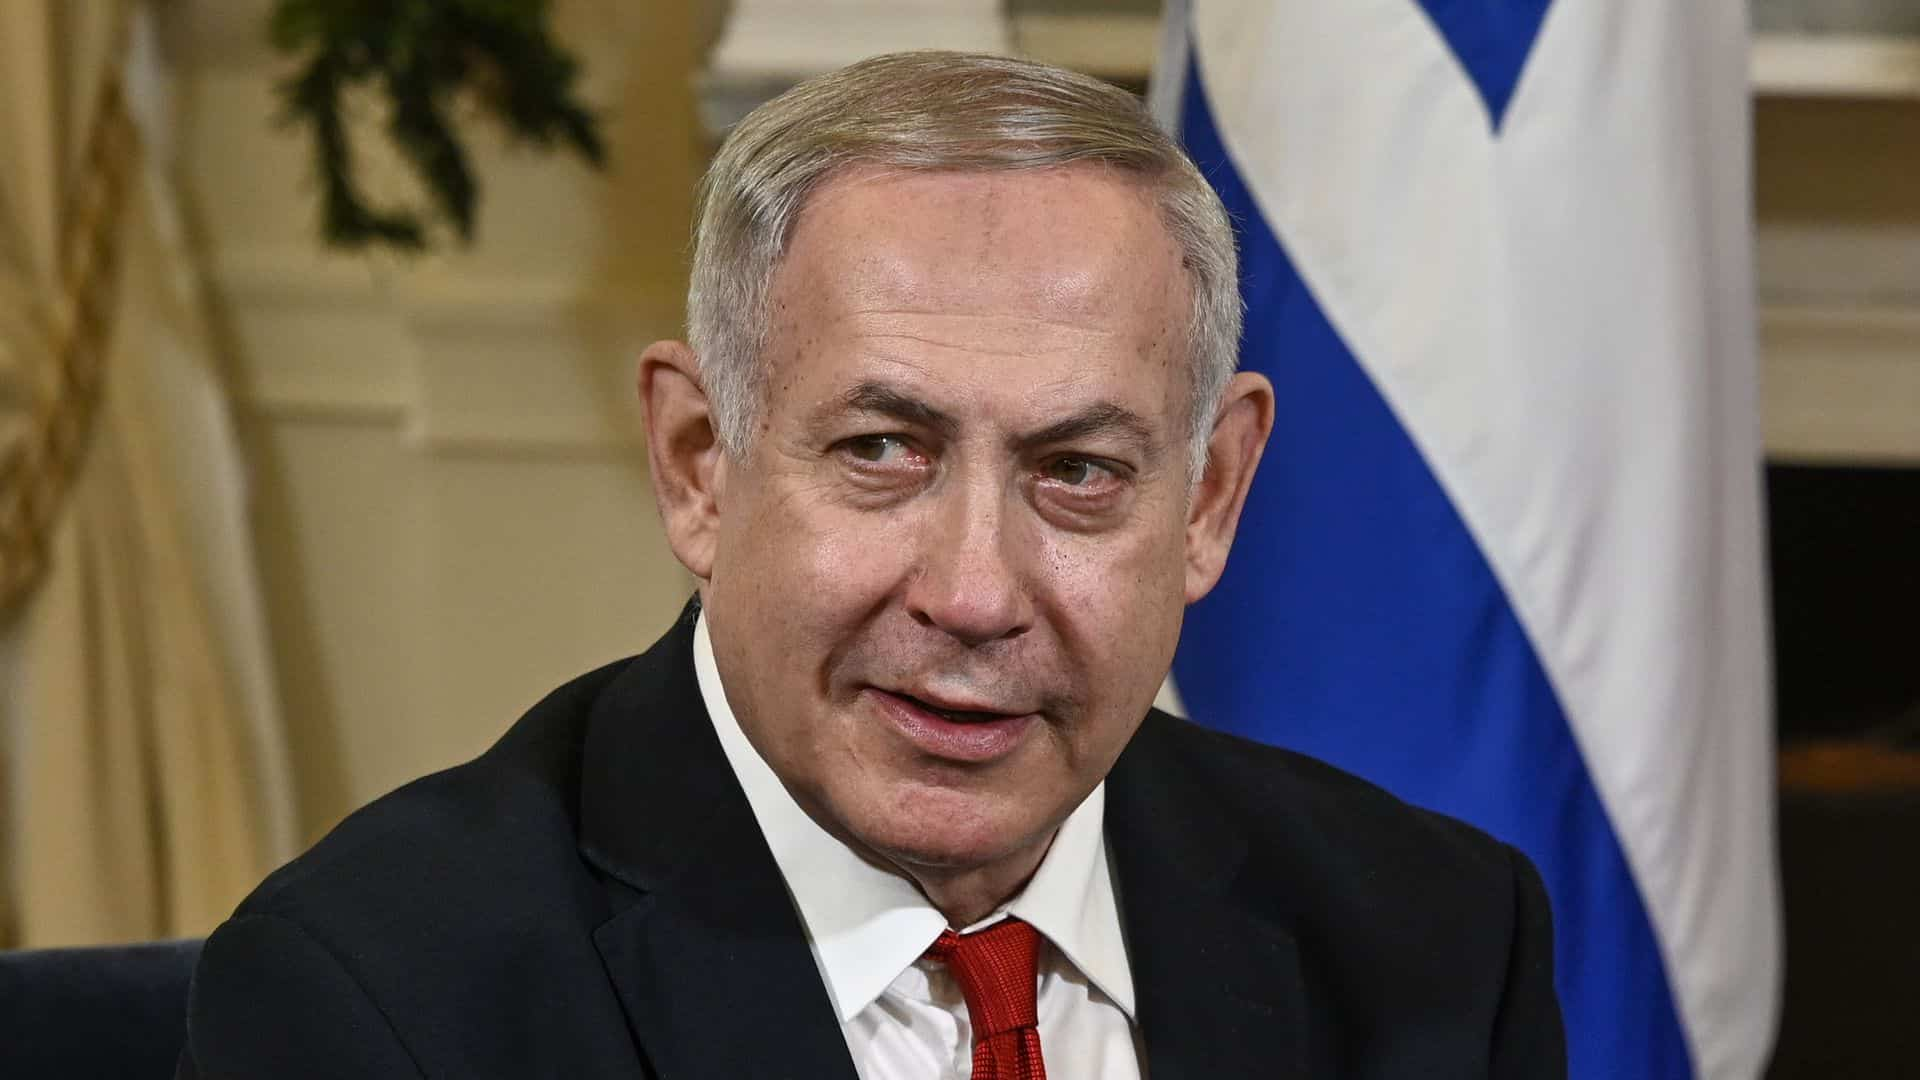 Israel's Netanyahu Asks Parliament For Immunity From Corruption Charges